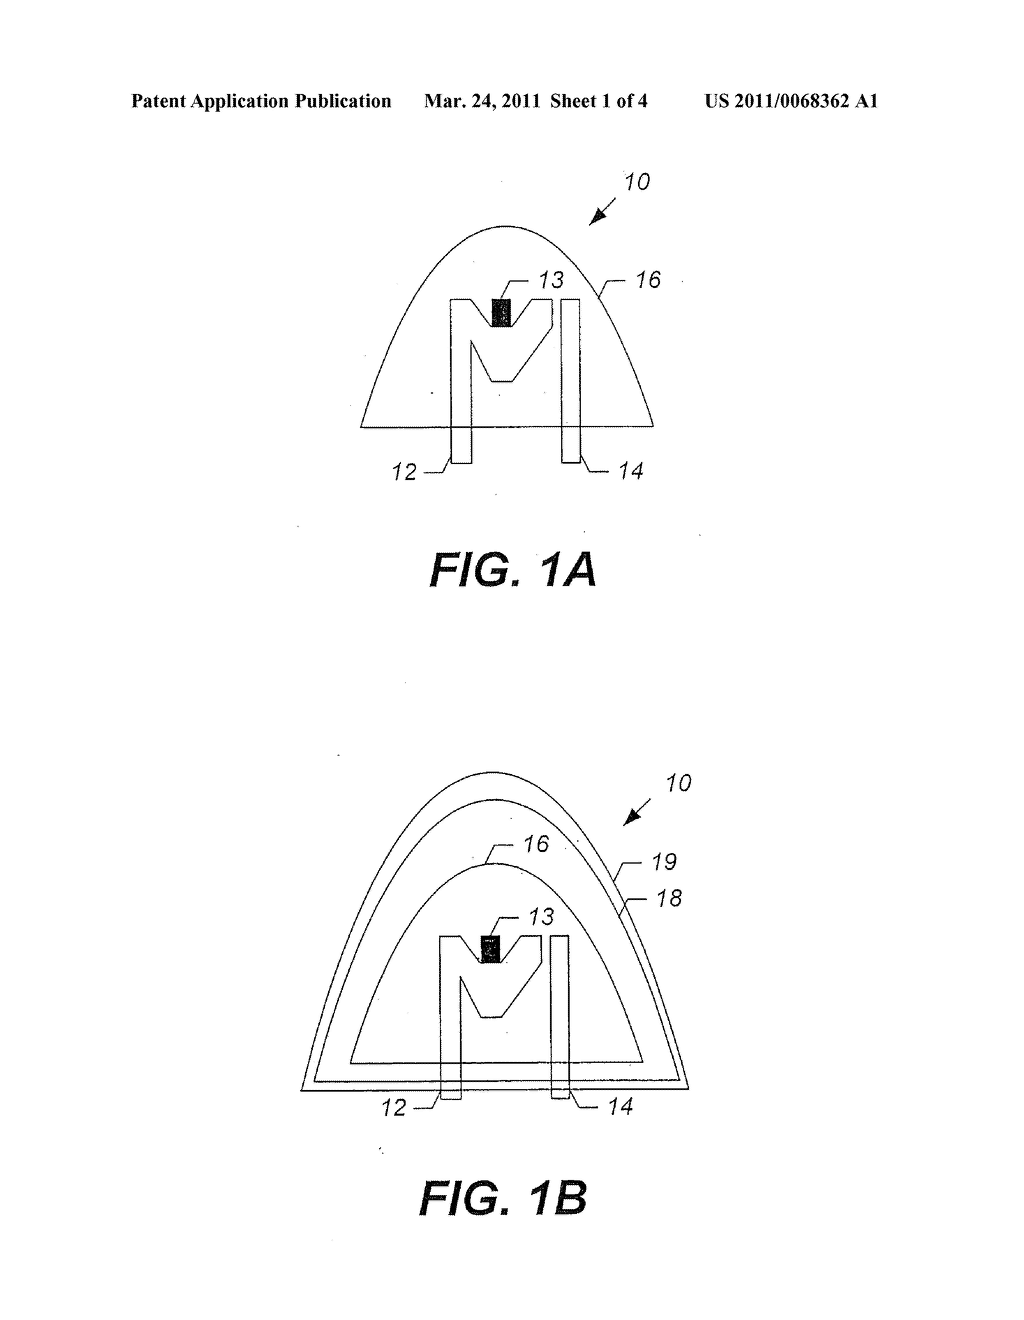 Light-Emitting Devices Having Multiple Encapsulation Layers With at Least One of the Encapsulation Layers Including Nanoparticles and Methods of Forming the Same - diagram, schematic, and image 02